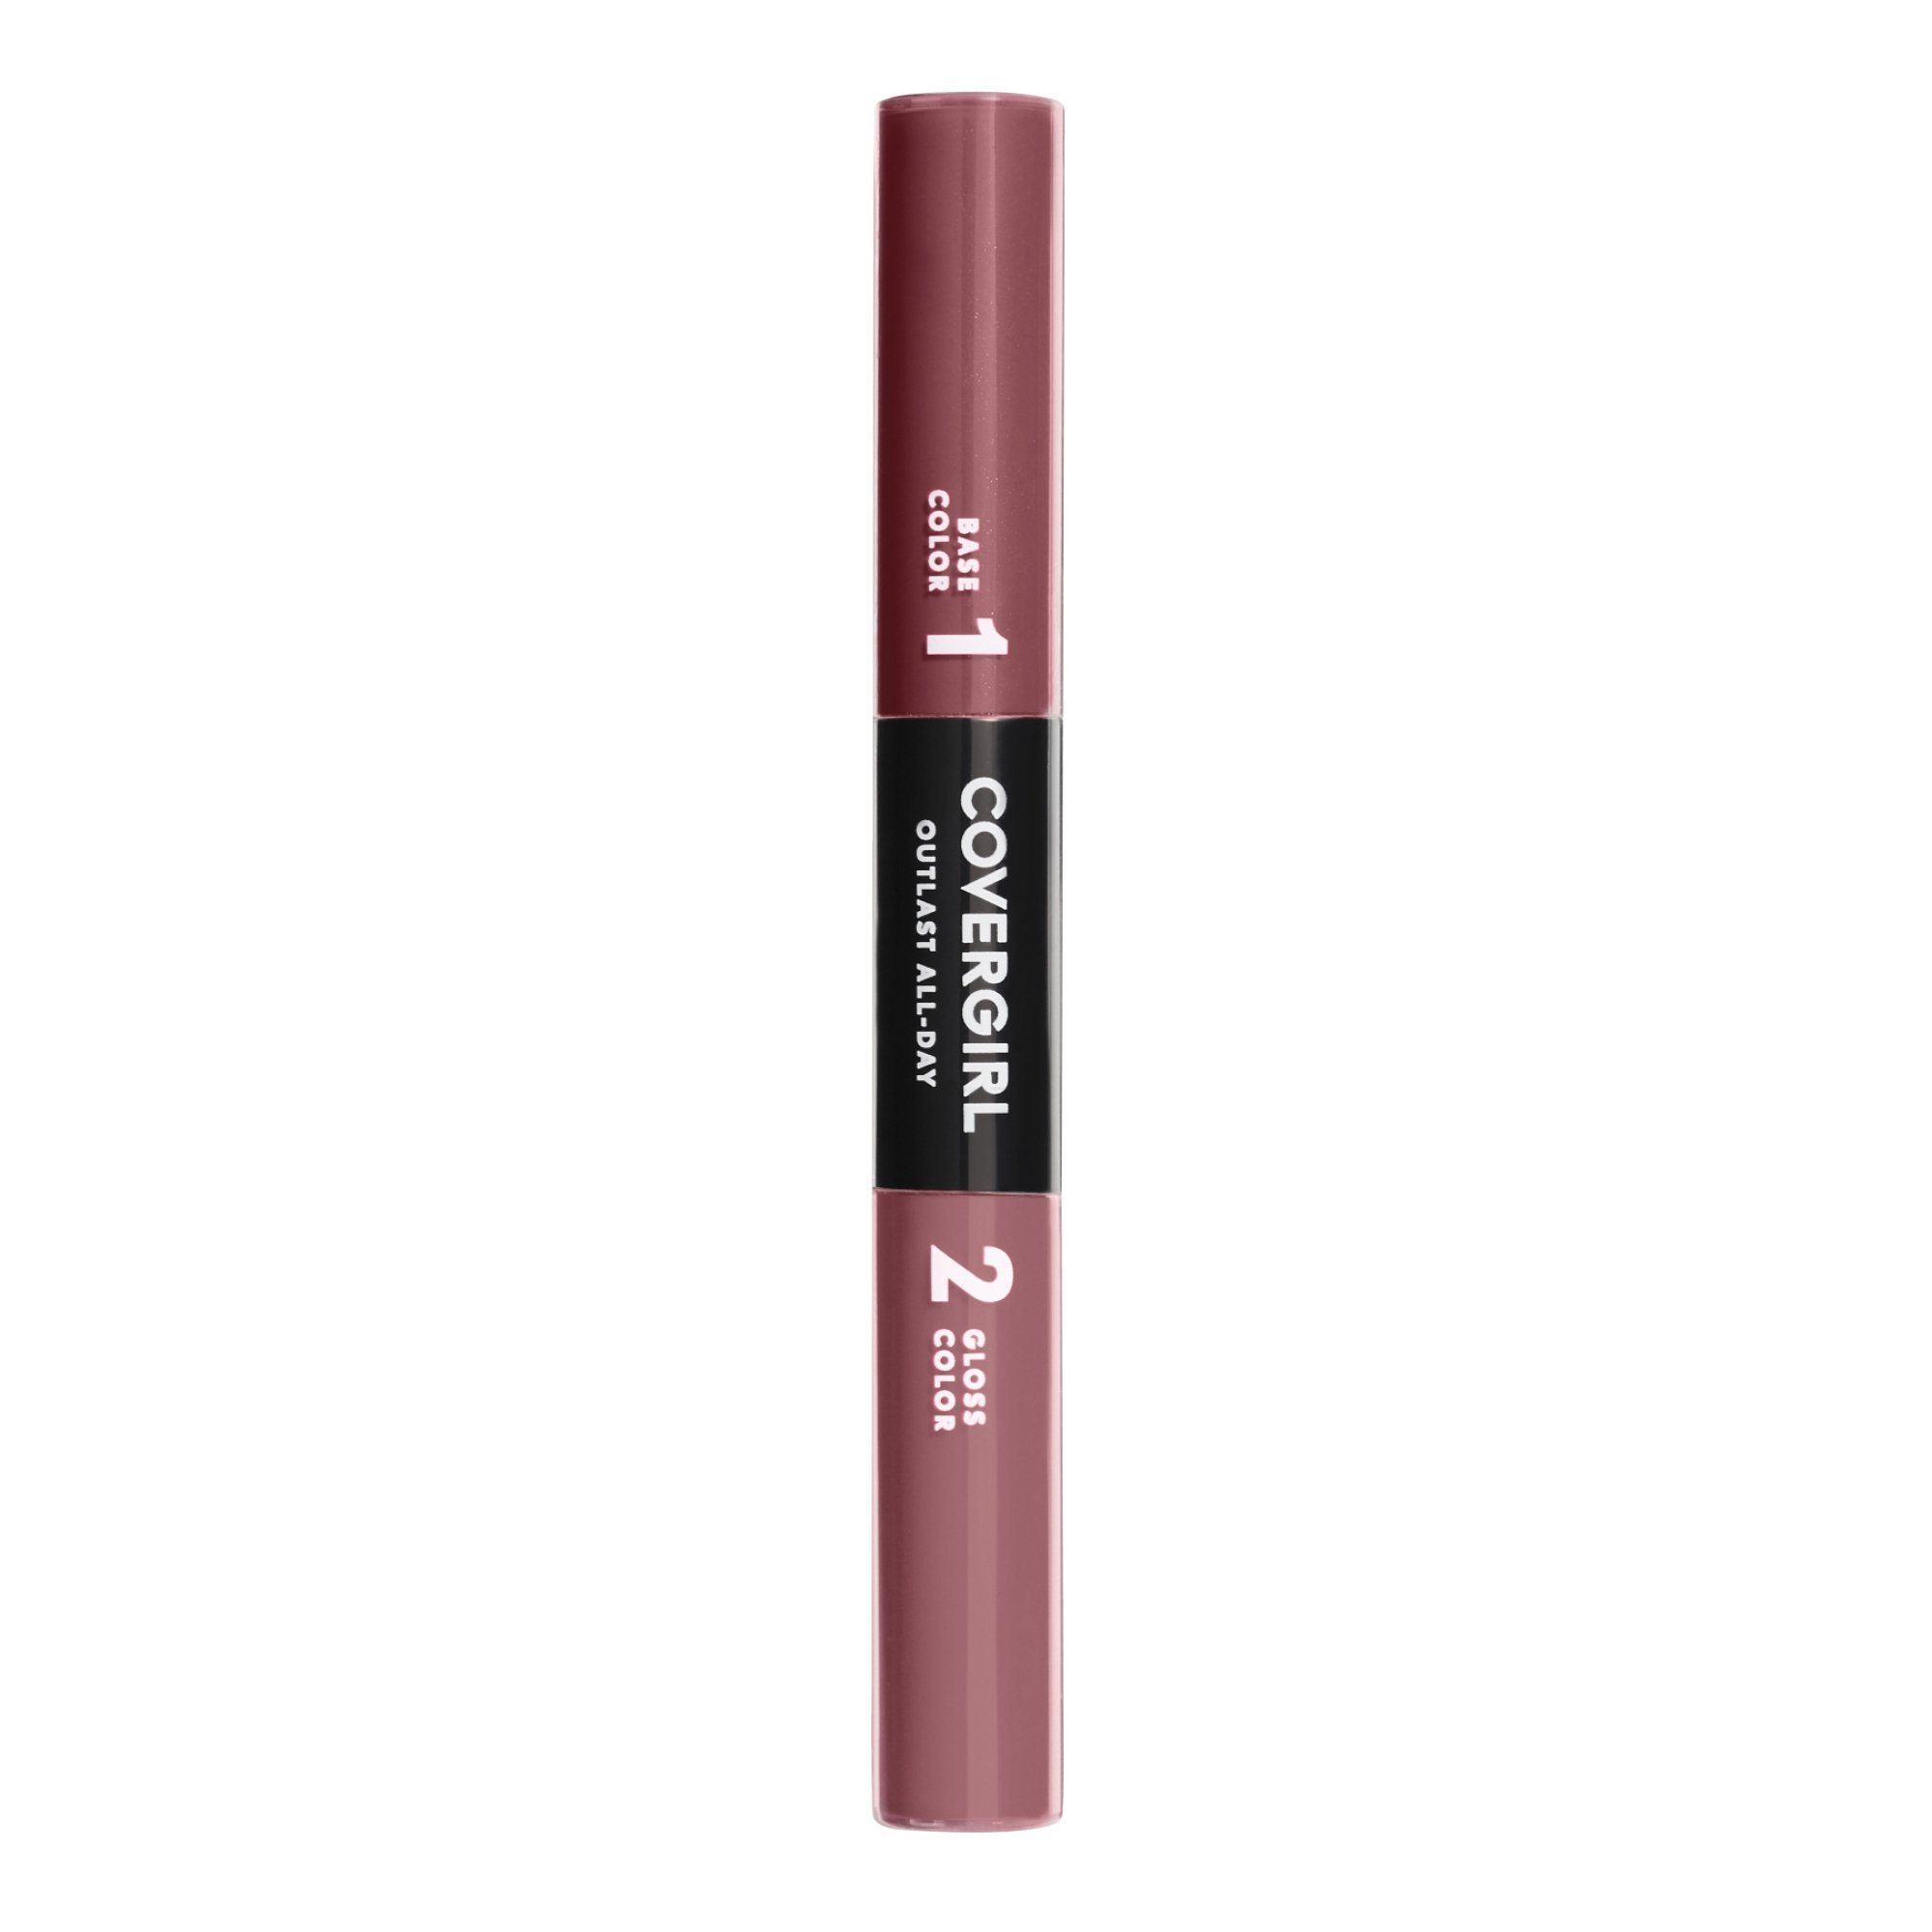 COVERGIRL Outlast All-Day Color & Lip Gloss, Rich Caramel, 0.2 Ounce (packaging may vary)